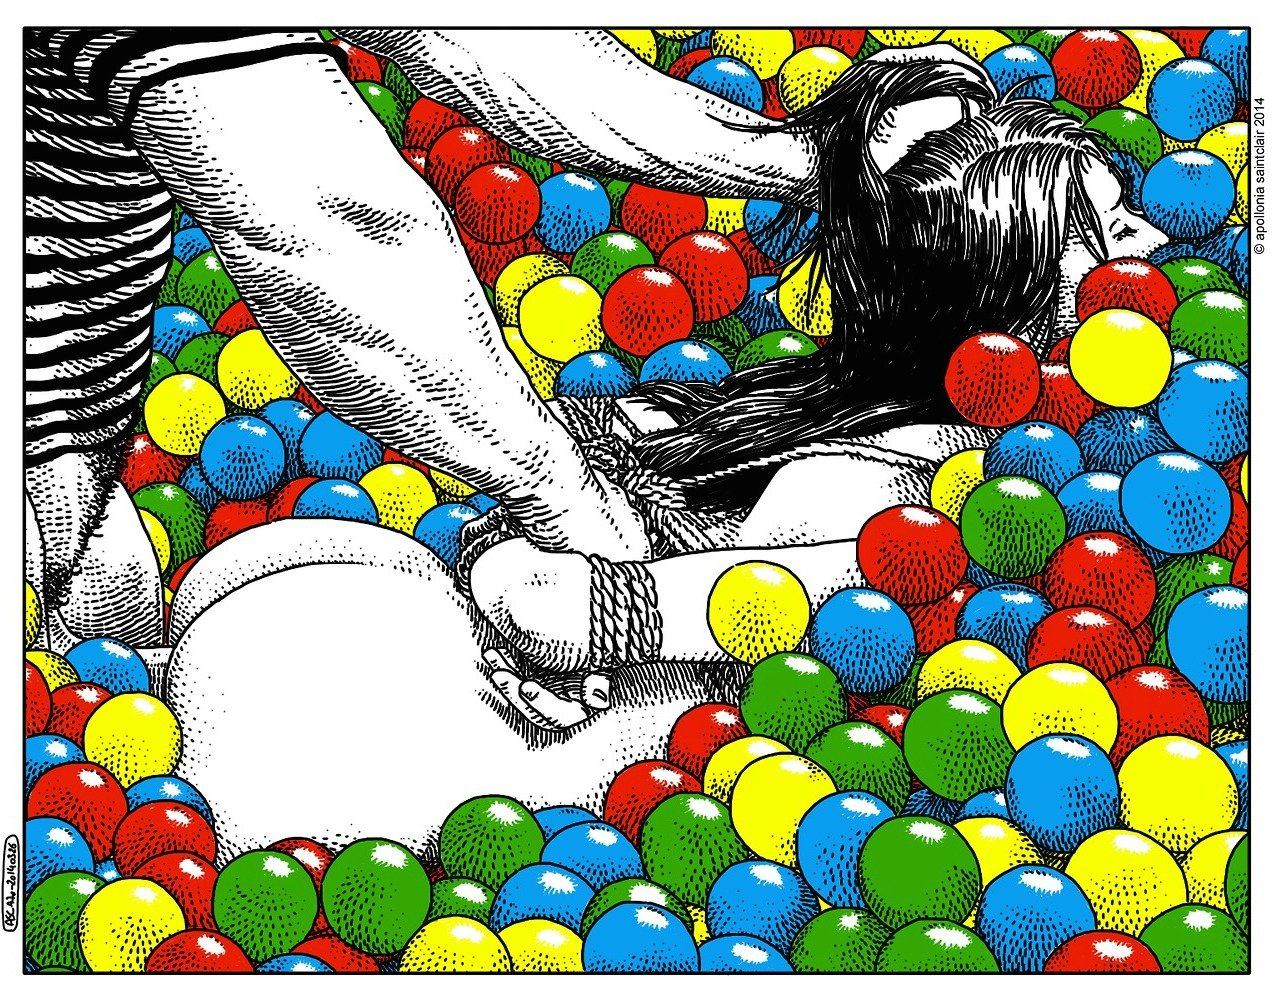 Le illustrazioni erotiche di Apollonia Saintclair | Collater.al